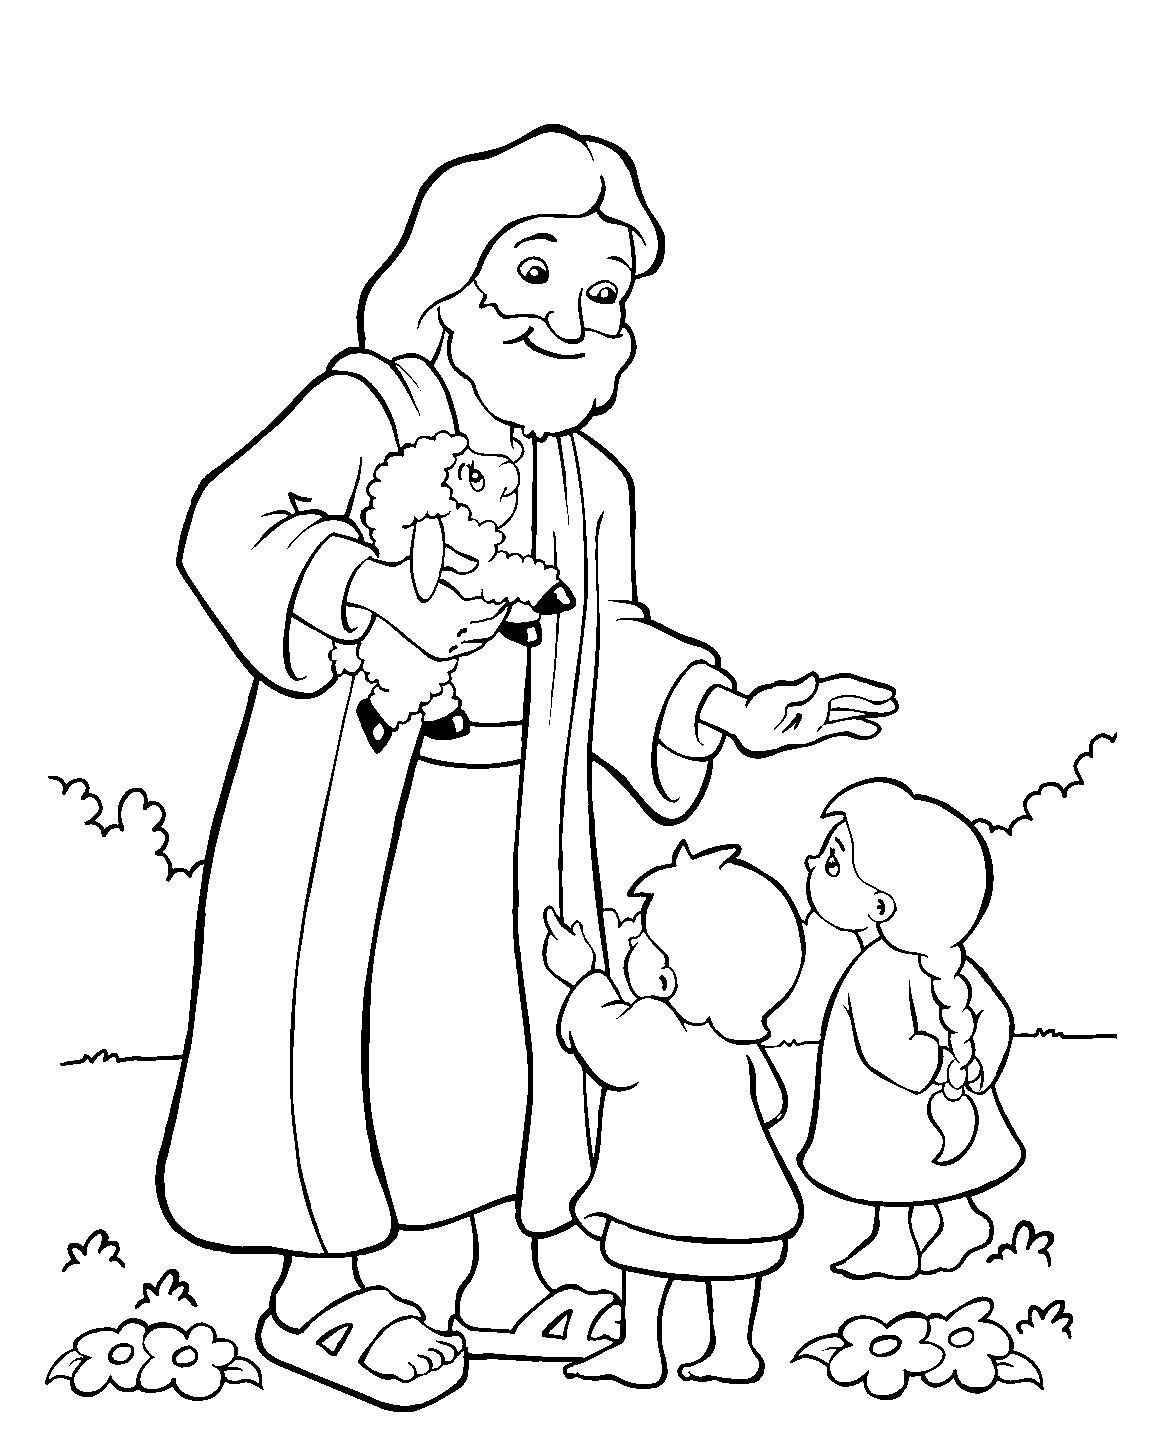 friends of jesus coloring pages - photo#31